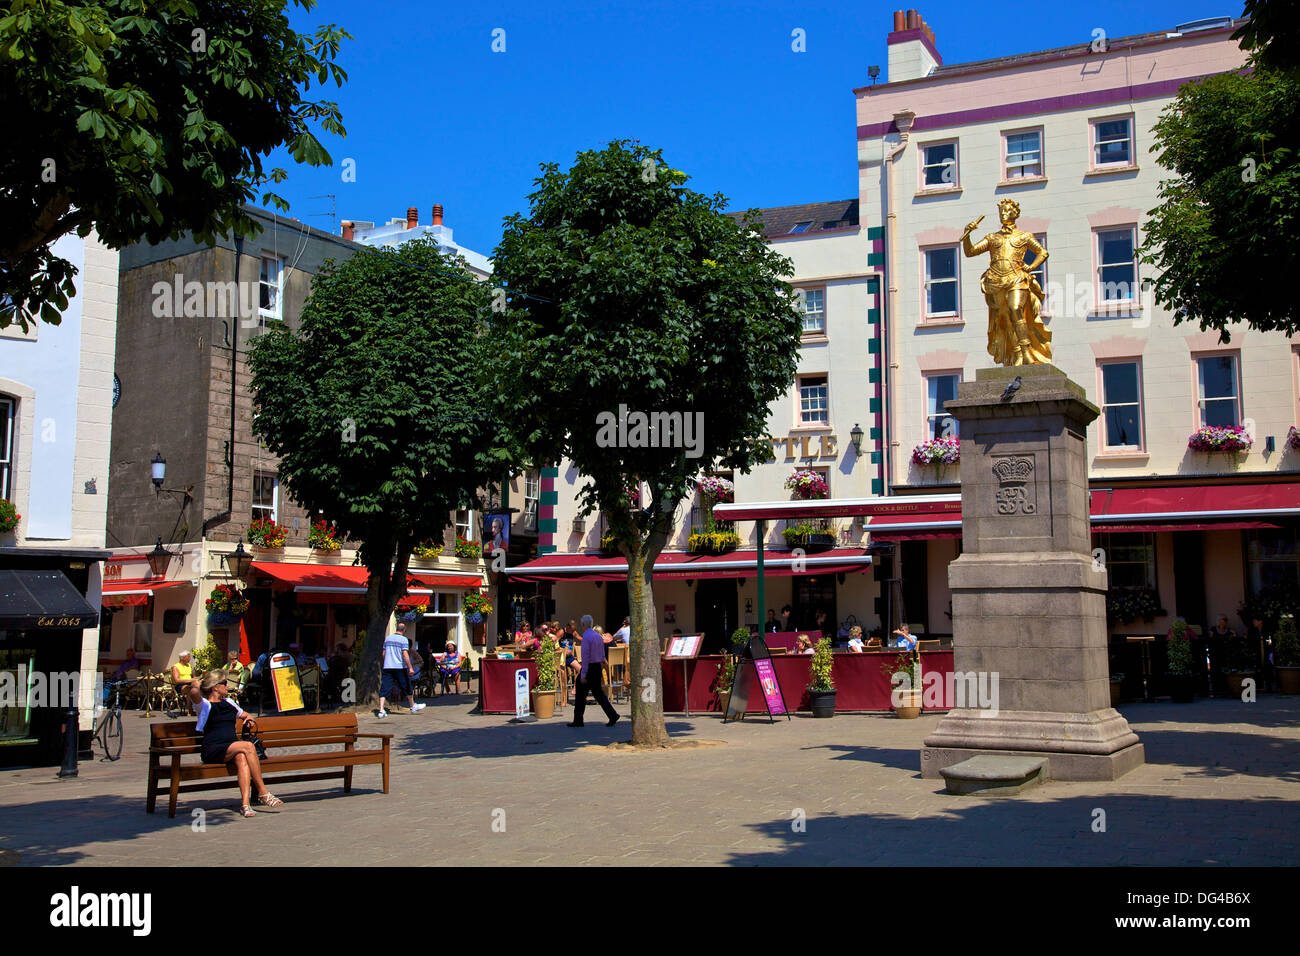 Statue of King George II, Royal Square, St. Helier, Jersey, Channel Islands, Europe - Stock Image